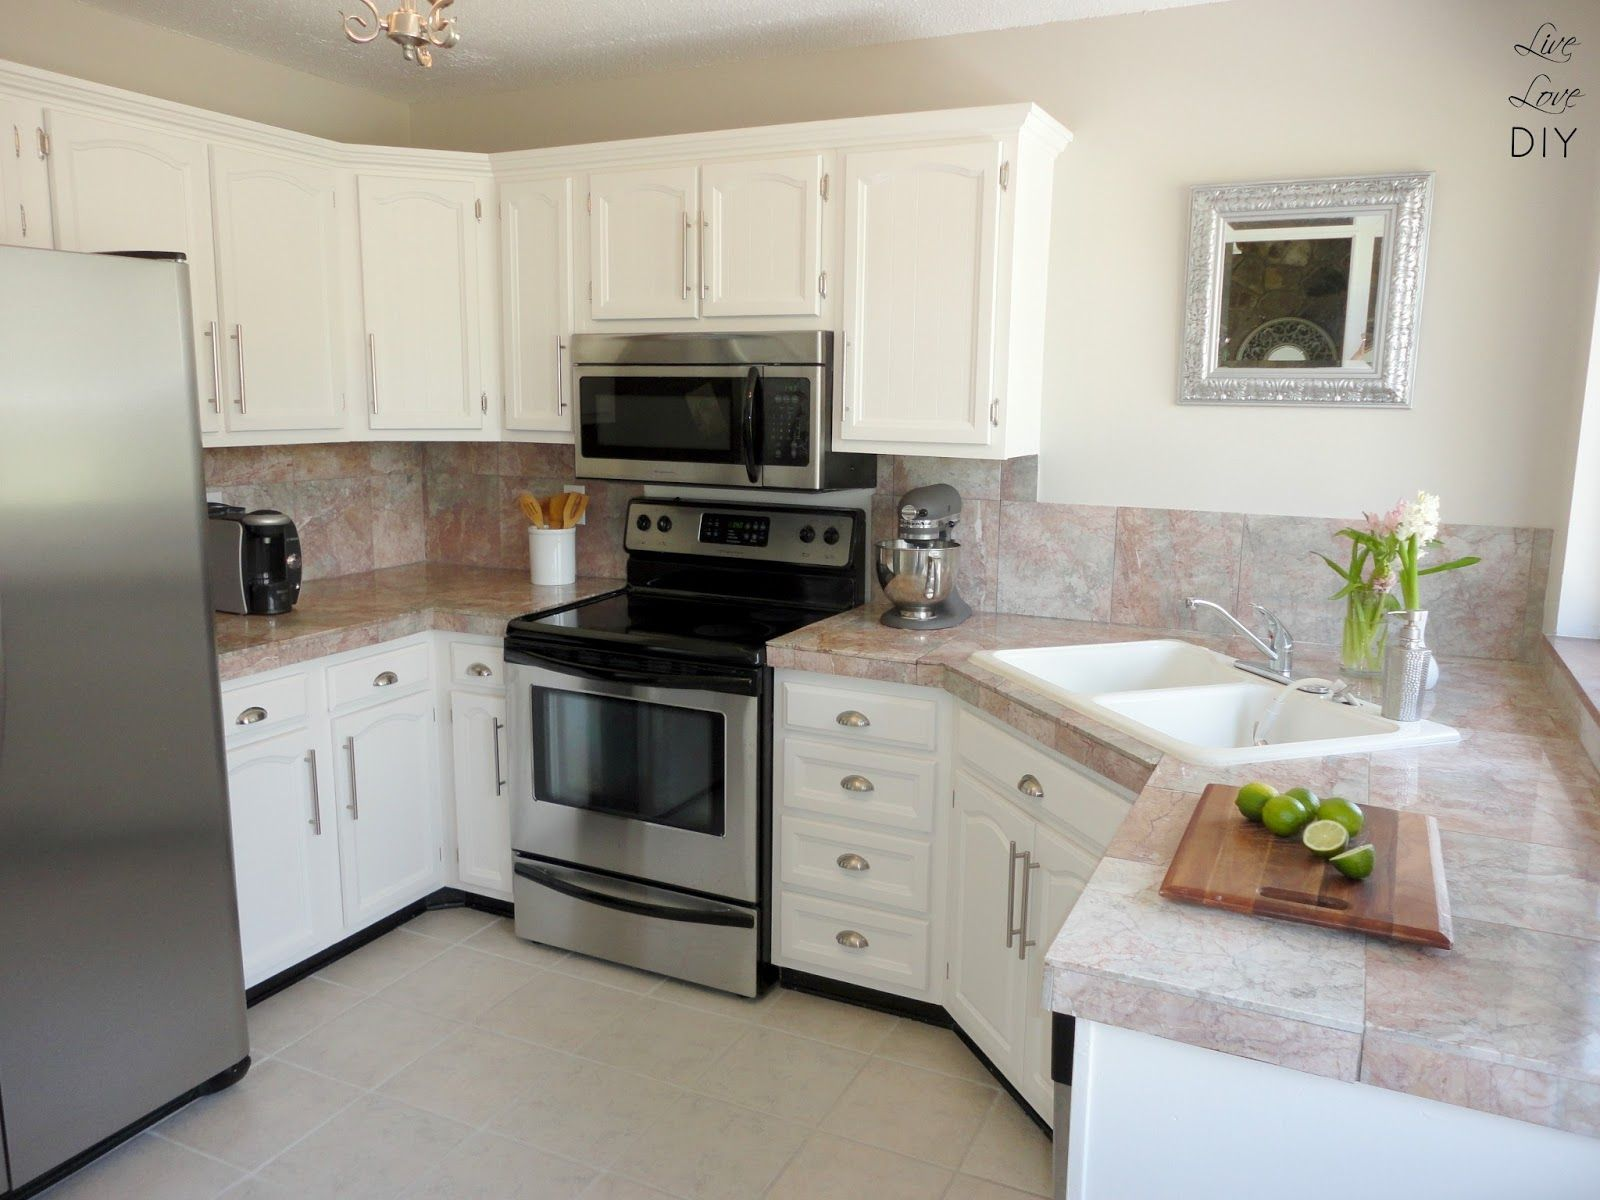 Painted White Kitchen Cabinets Design Decorating 77920